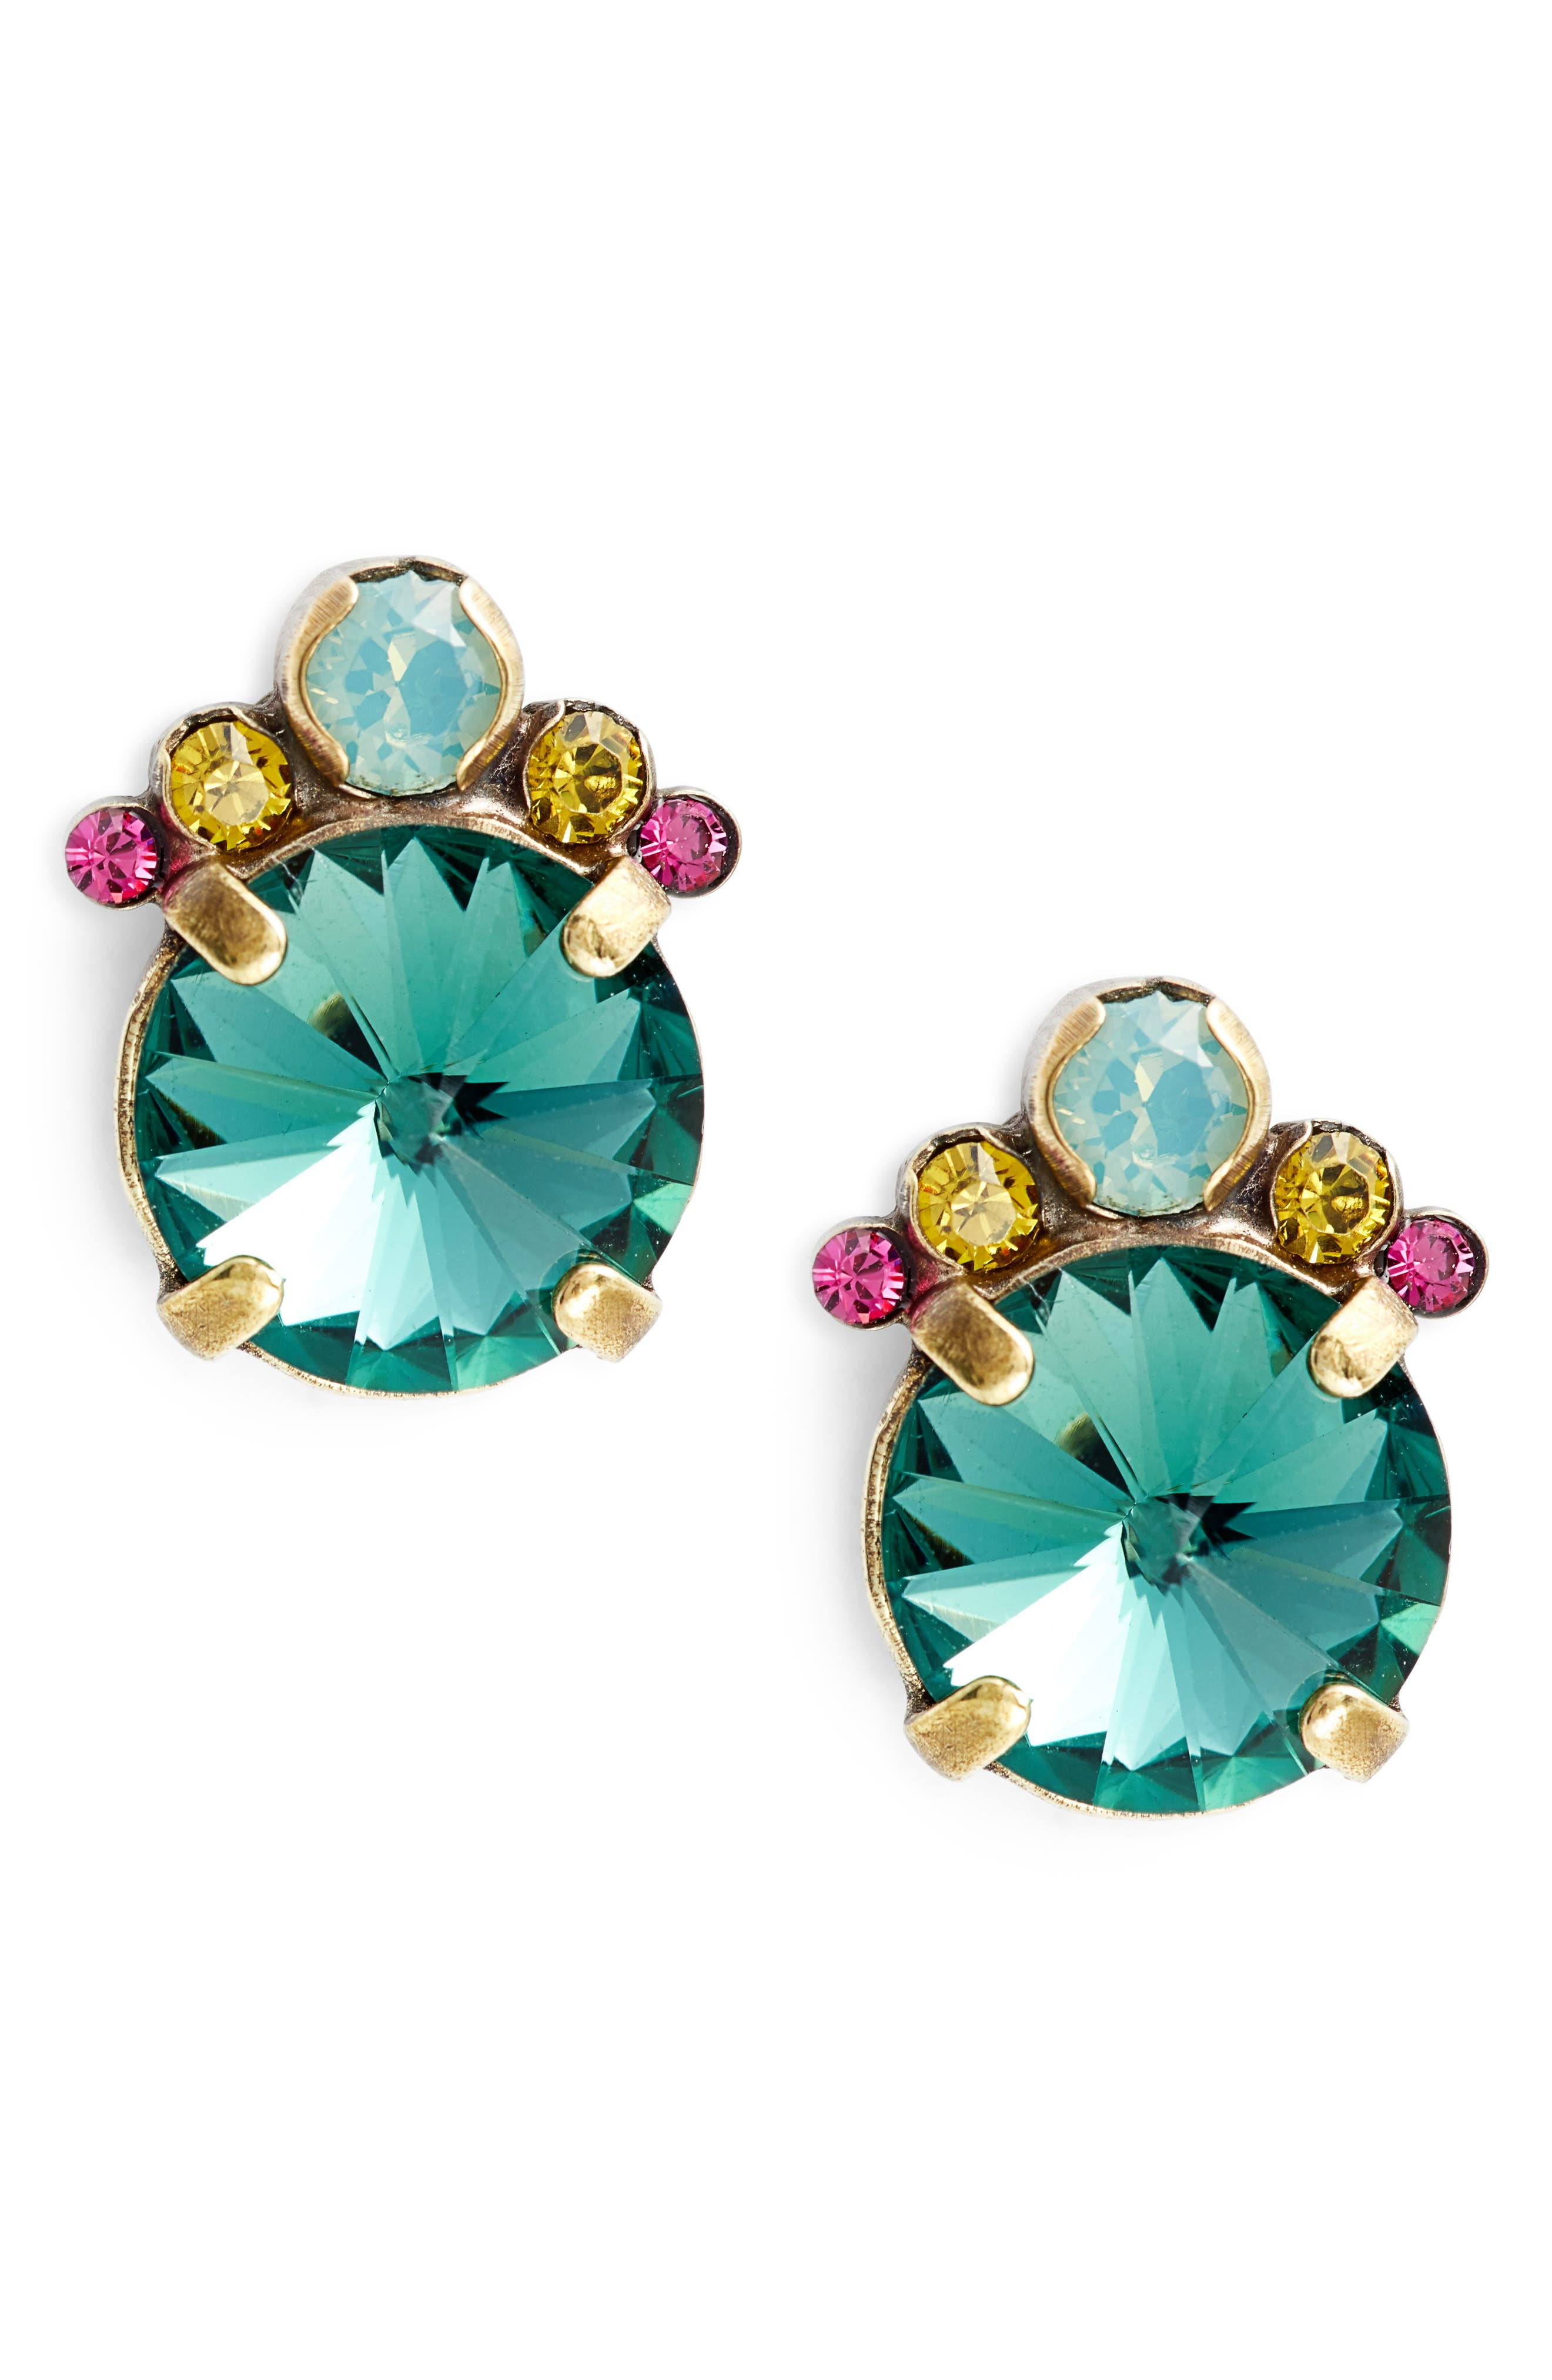 Regal Rounds Crystal Earrings,                         Main,                         color, Blue-Green